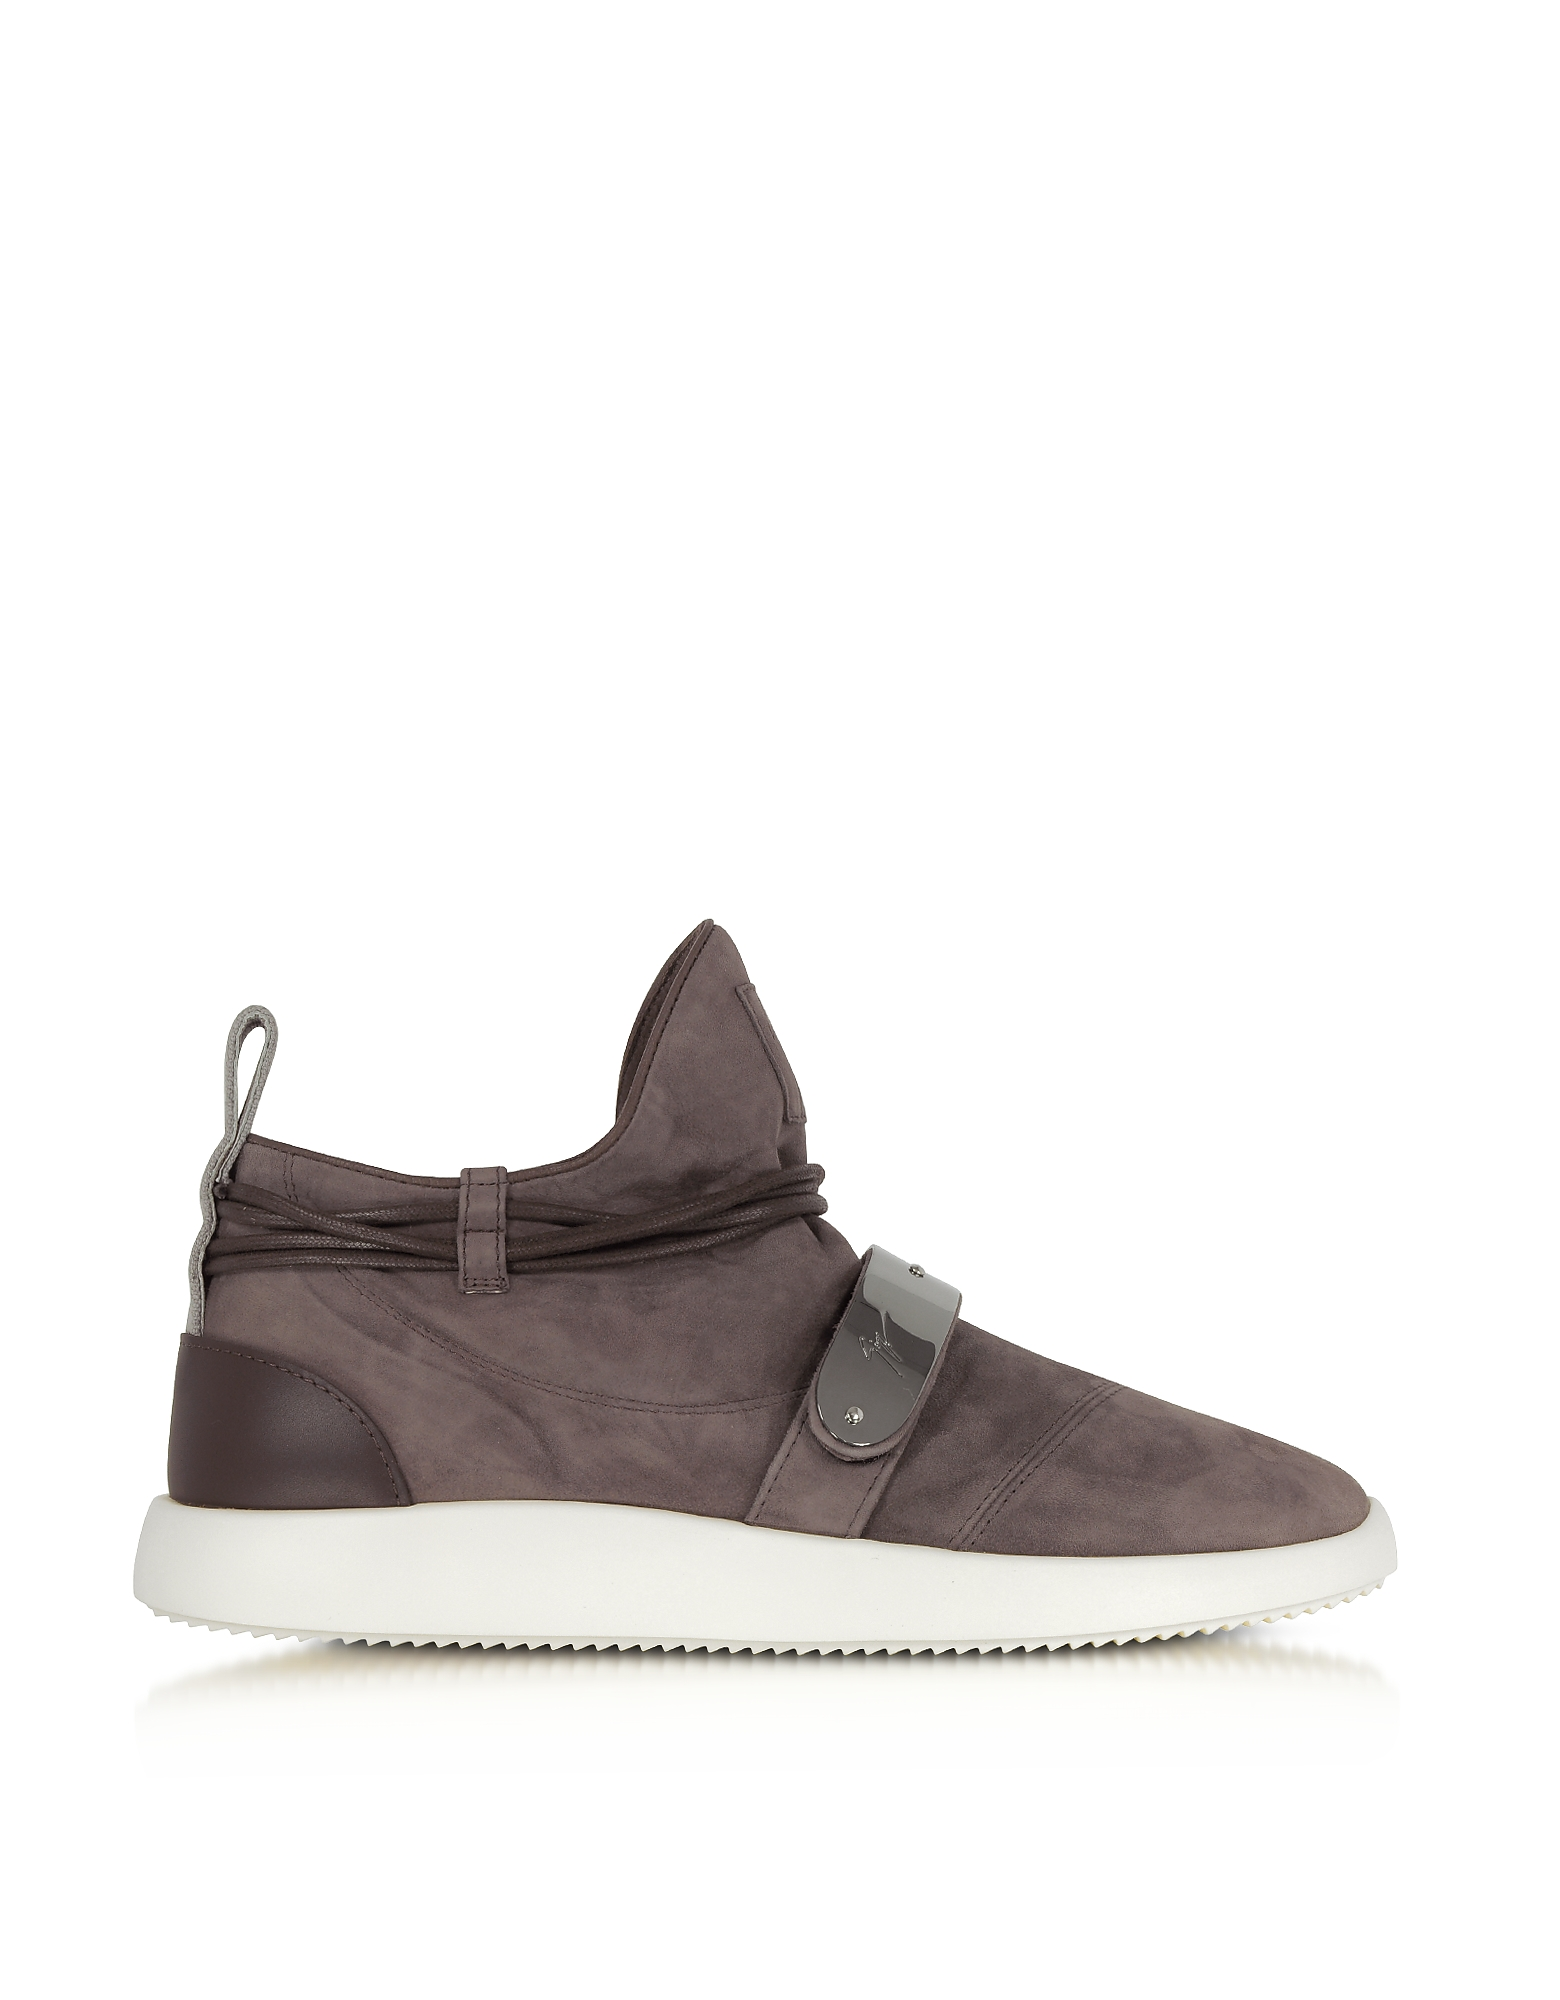 Giuseppe Zanotti Shoes, Brown Suede Mid-Top Men's Sneakers